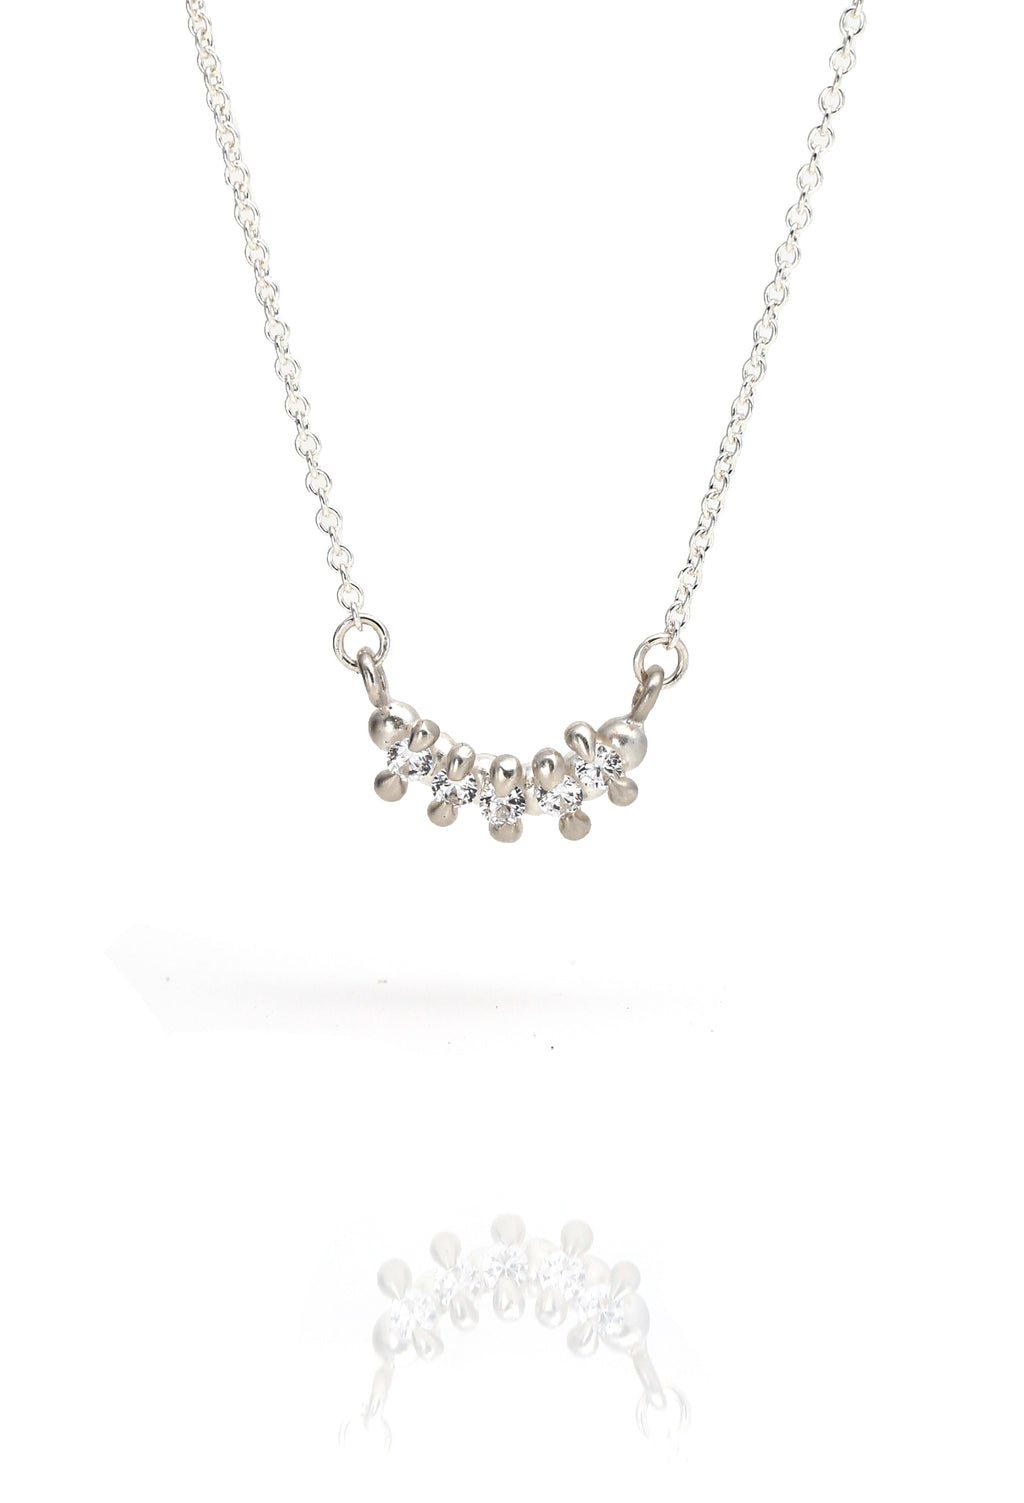 5 Stone Bar Necklace White Sapphire